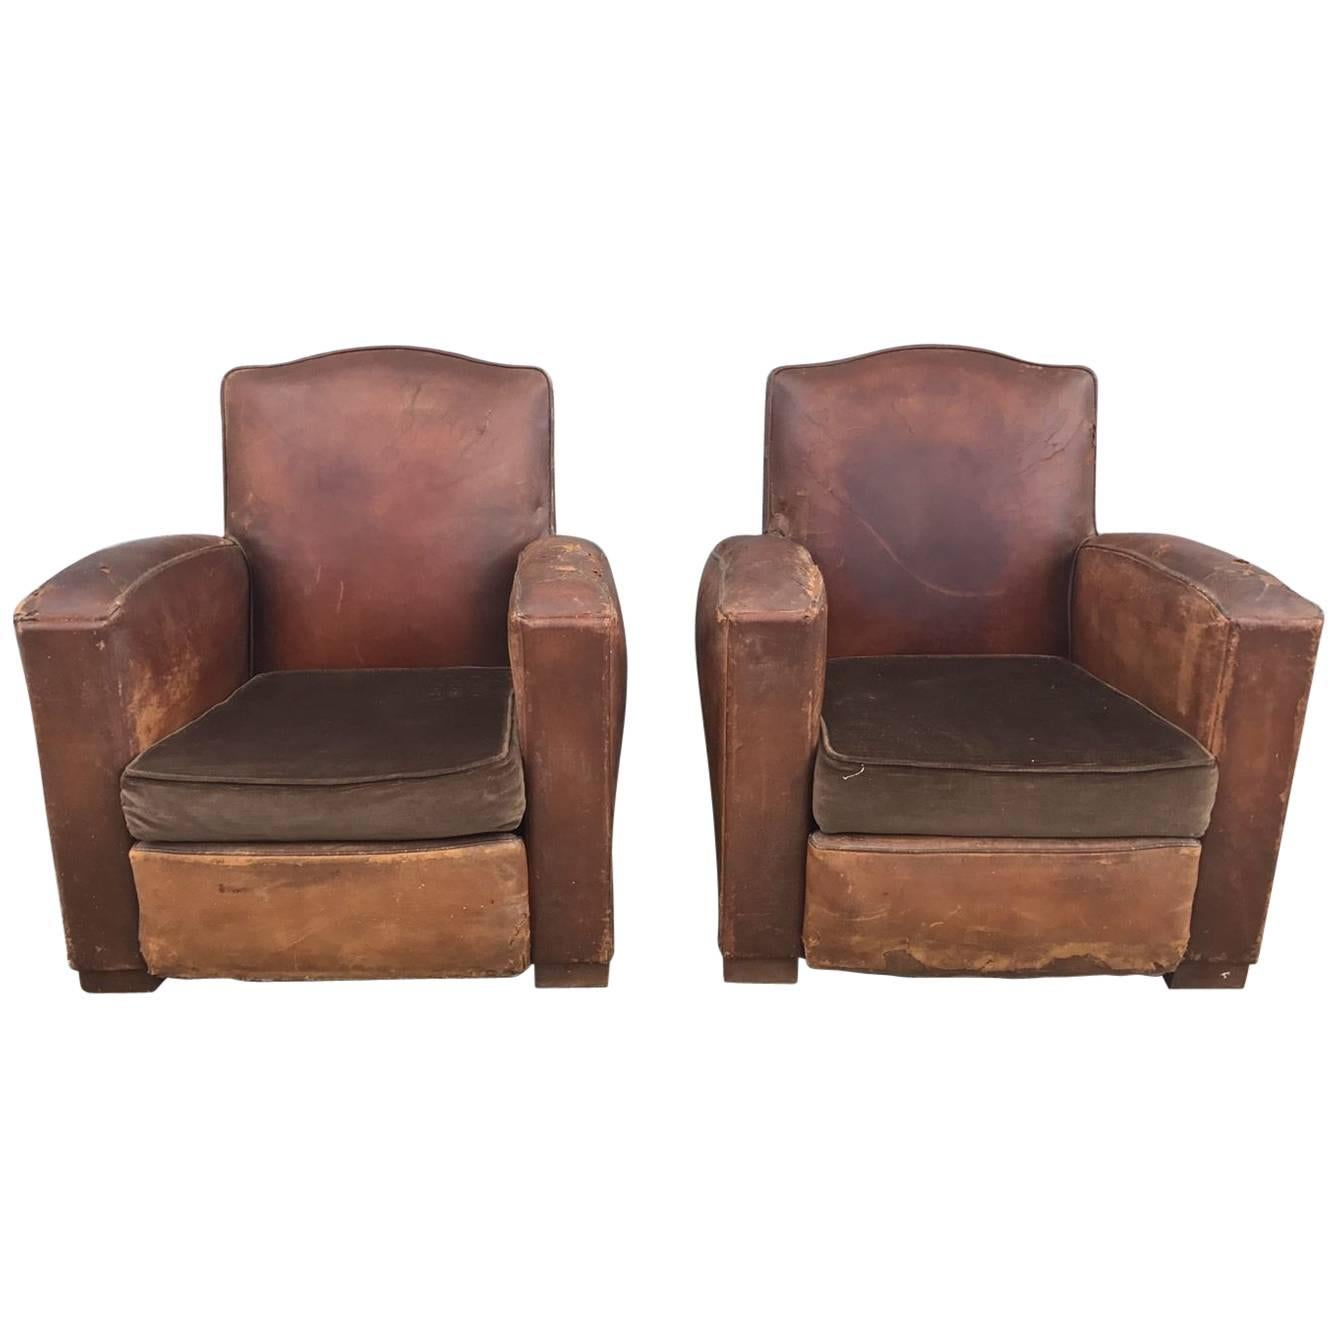 Beautiful French Leather Antique Club Chairs Industrial Vintage X2 For Sale  sc 1 st  1stDibs & Beautiful French Leather Antique Club Chairs Industrial Vintage X2 ...